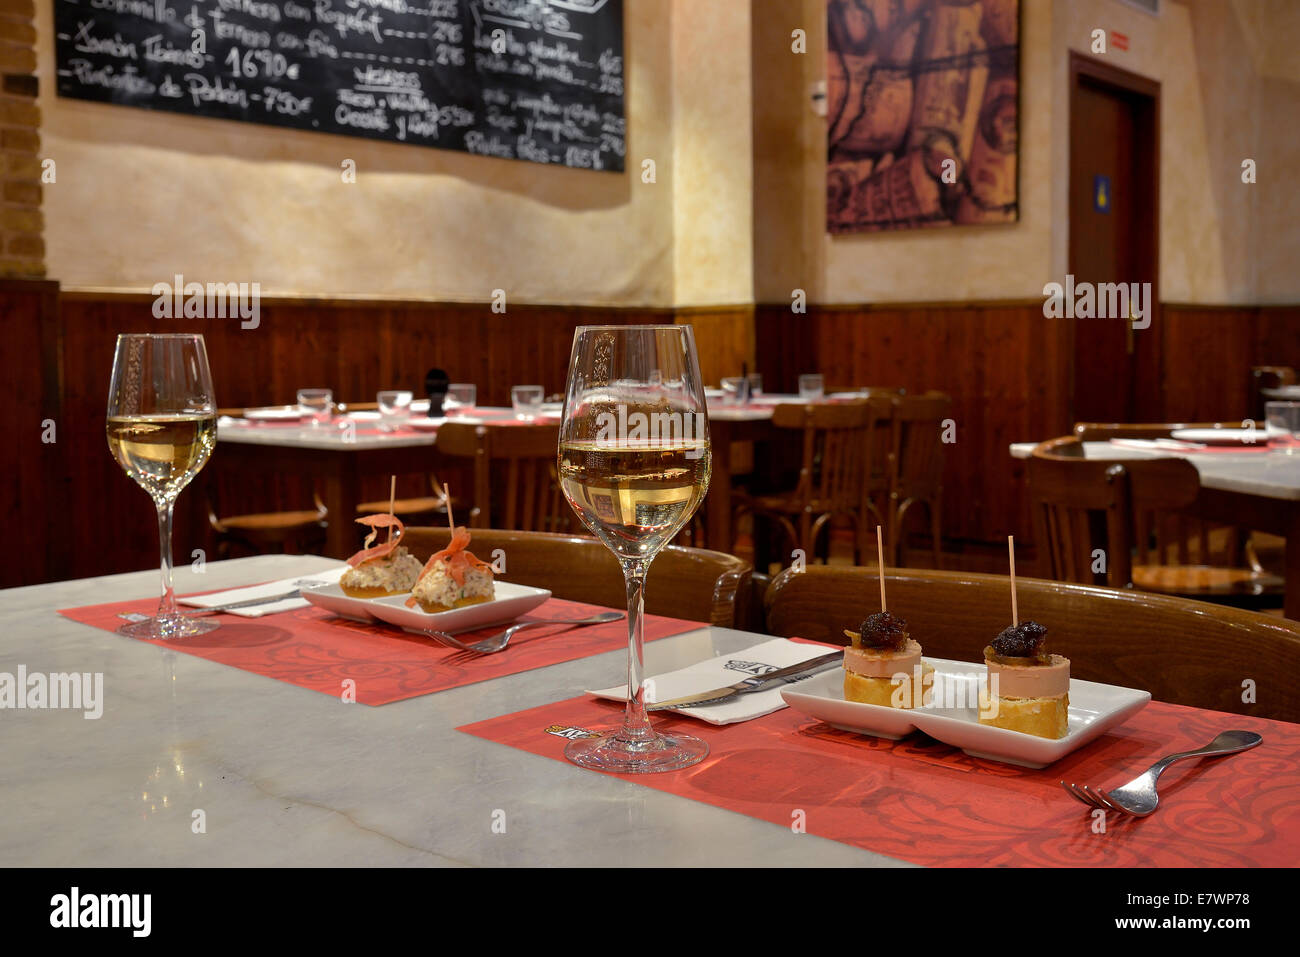 Tapas at the 'Tast' tapas bar, Palma, Mallorca, Balearic Islands, Spain - Stock Image